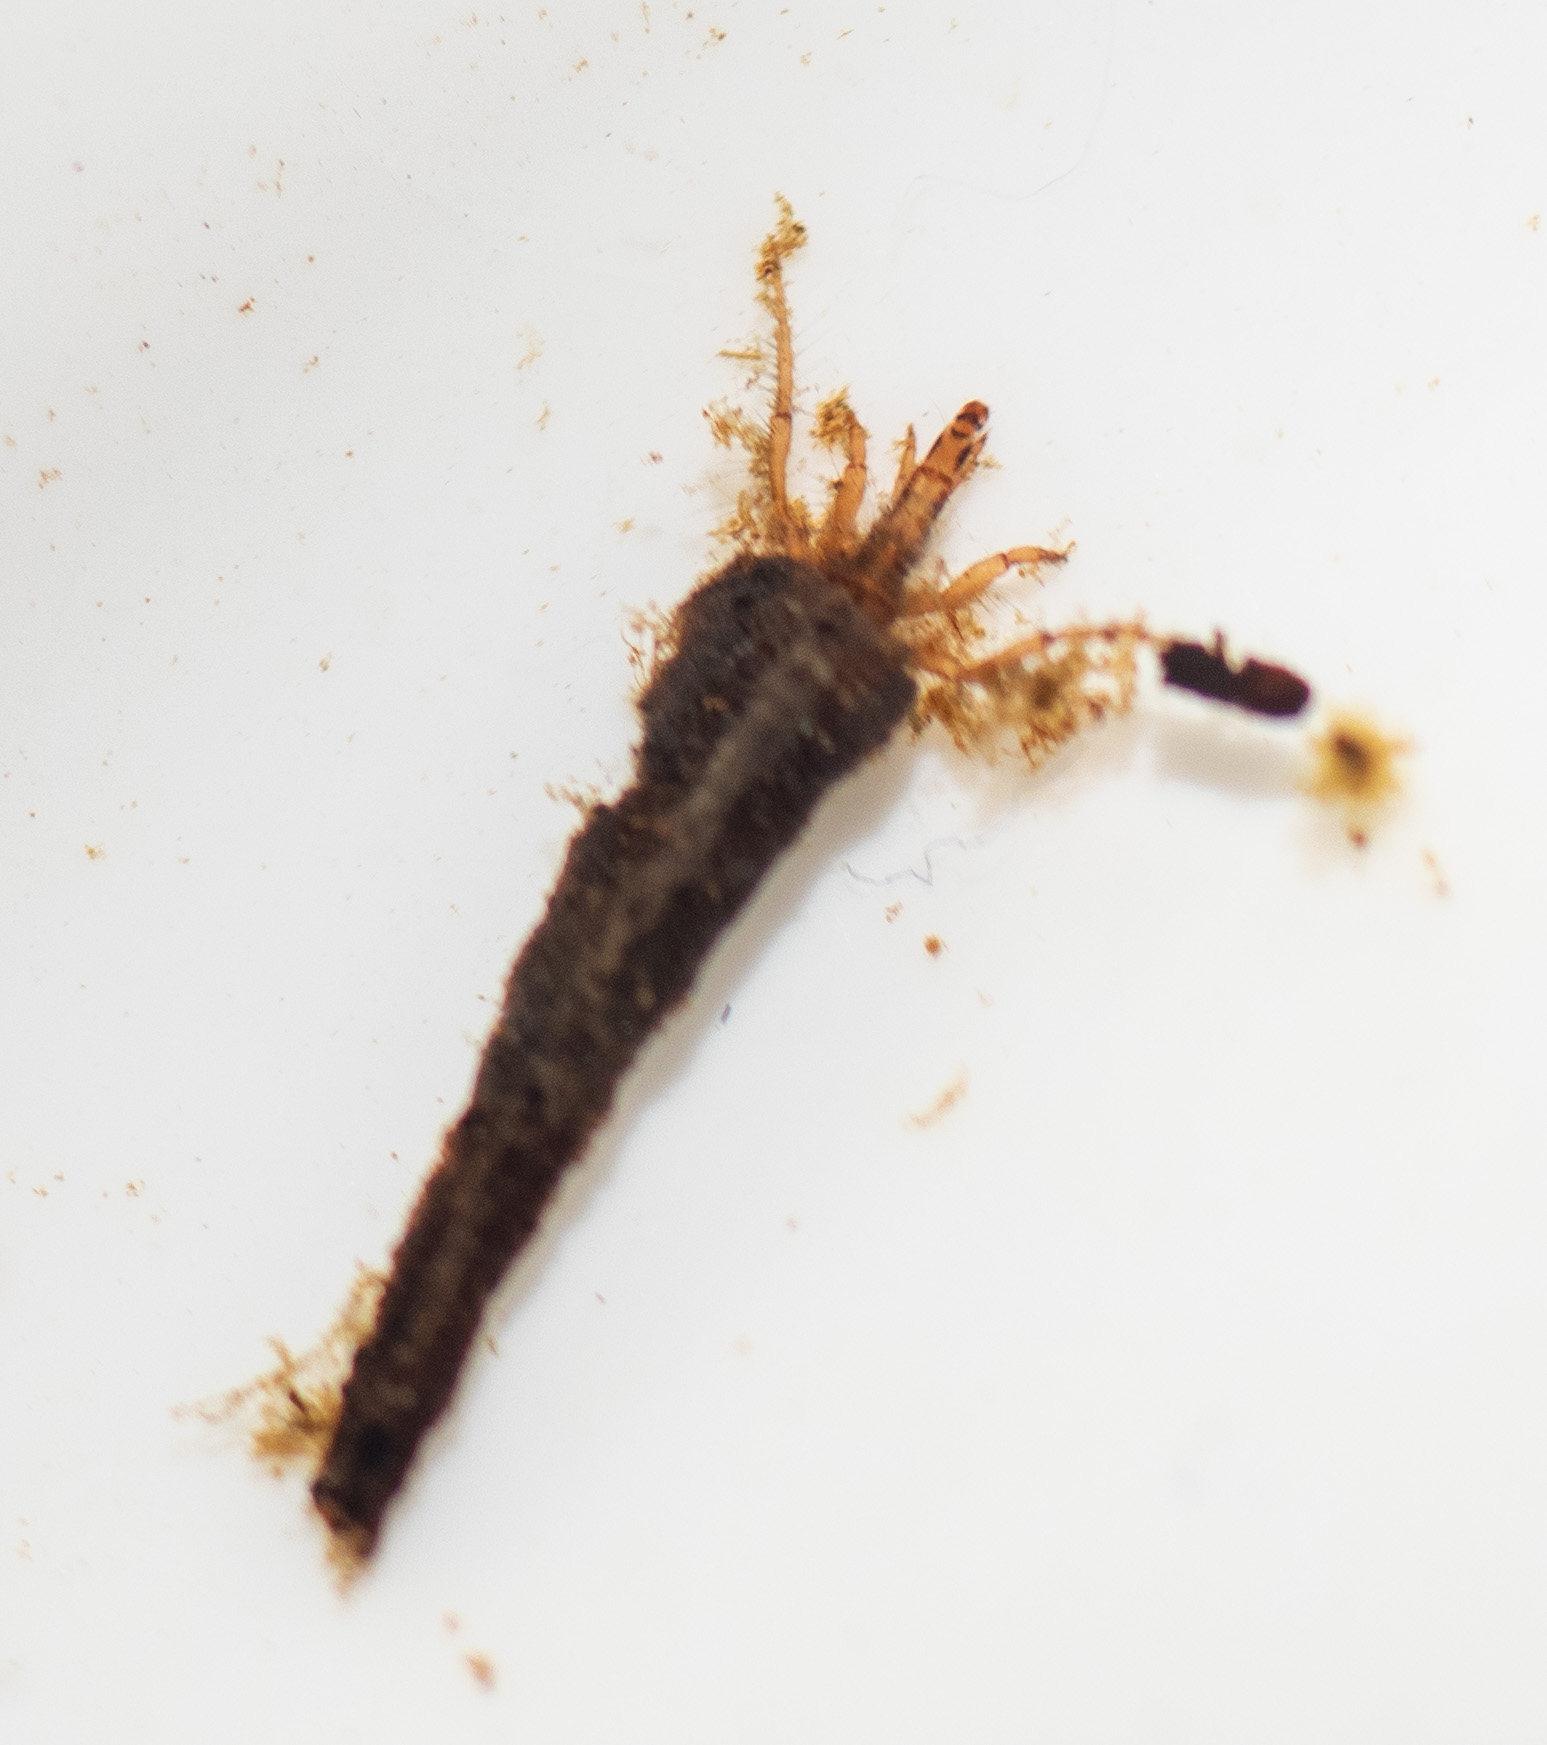 vulture caddis (Insect; Trichoptera; Atriplectididae)